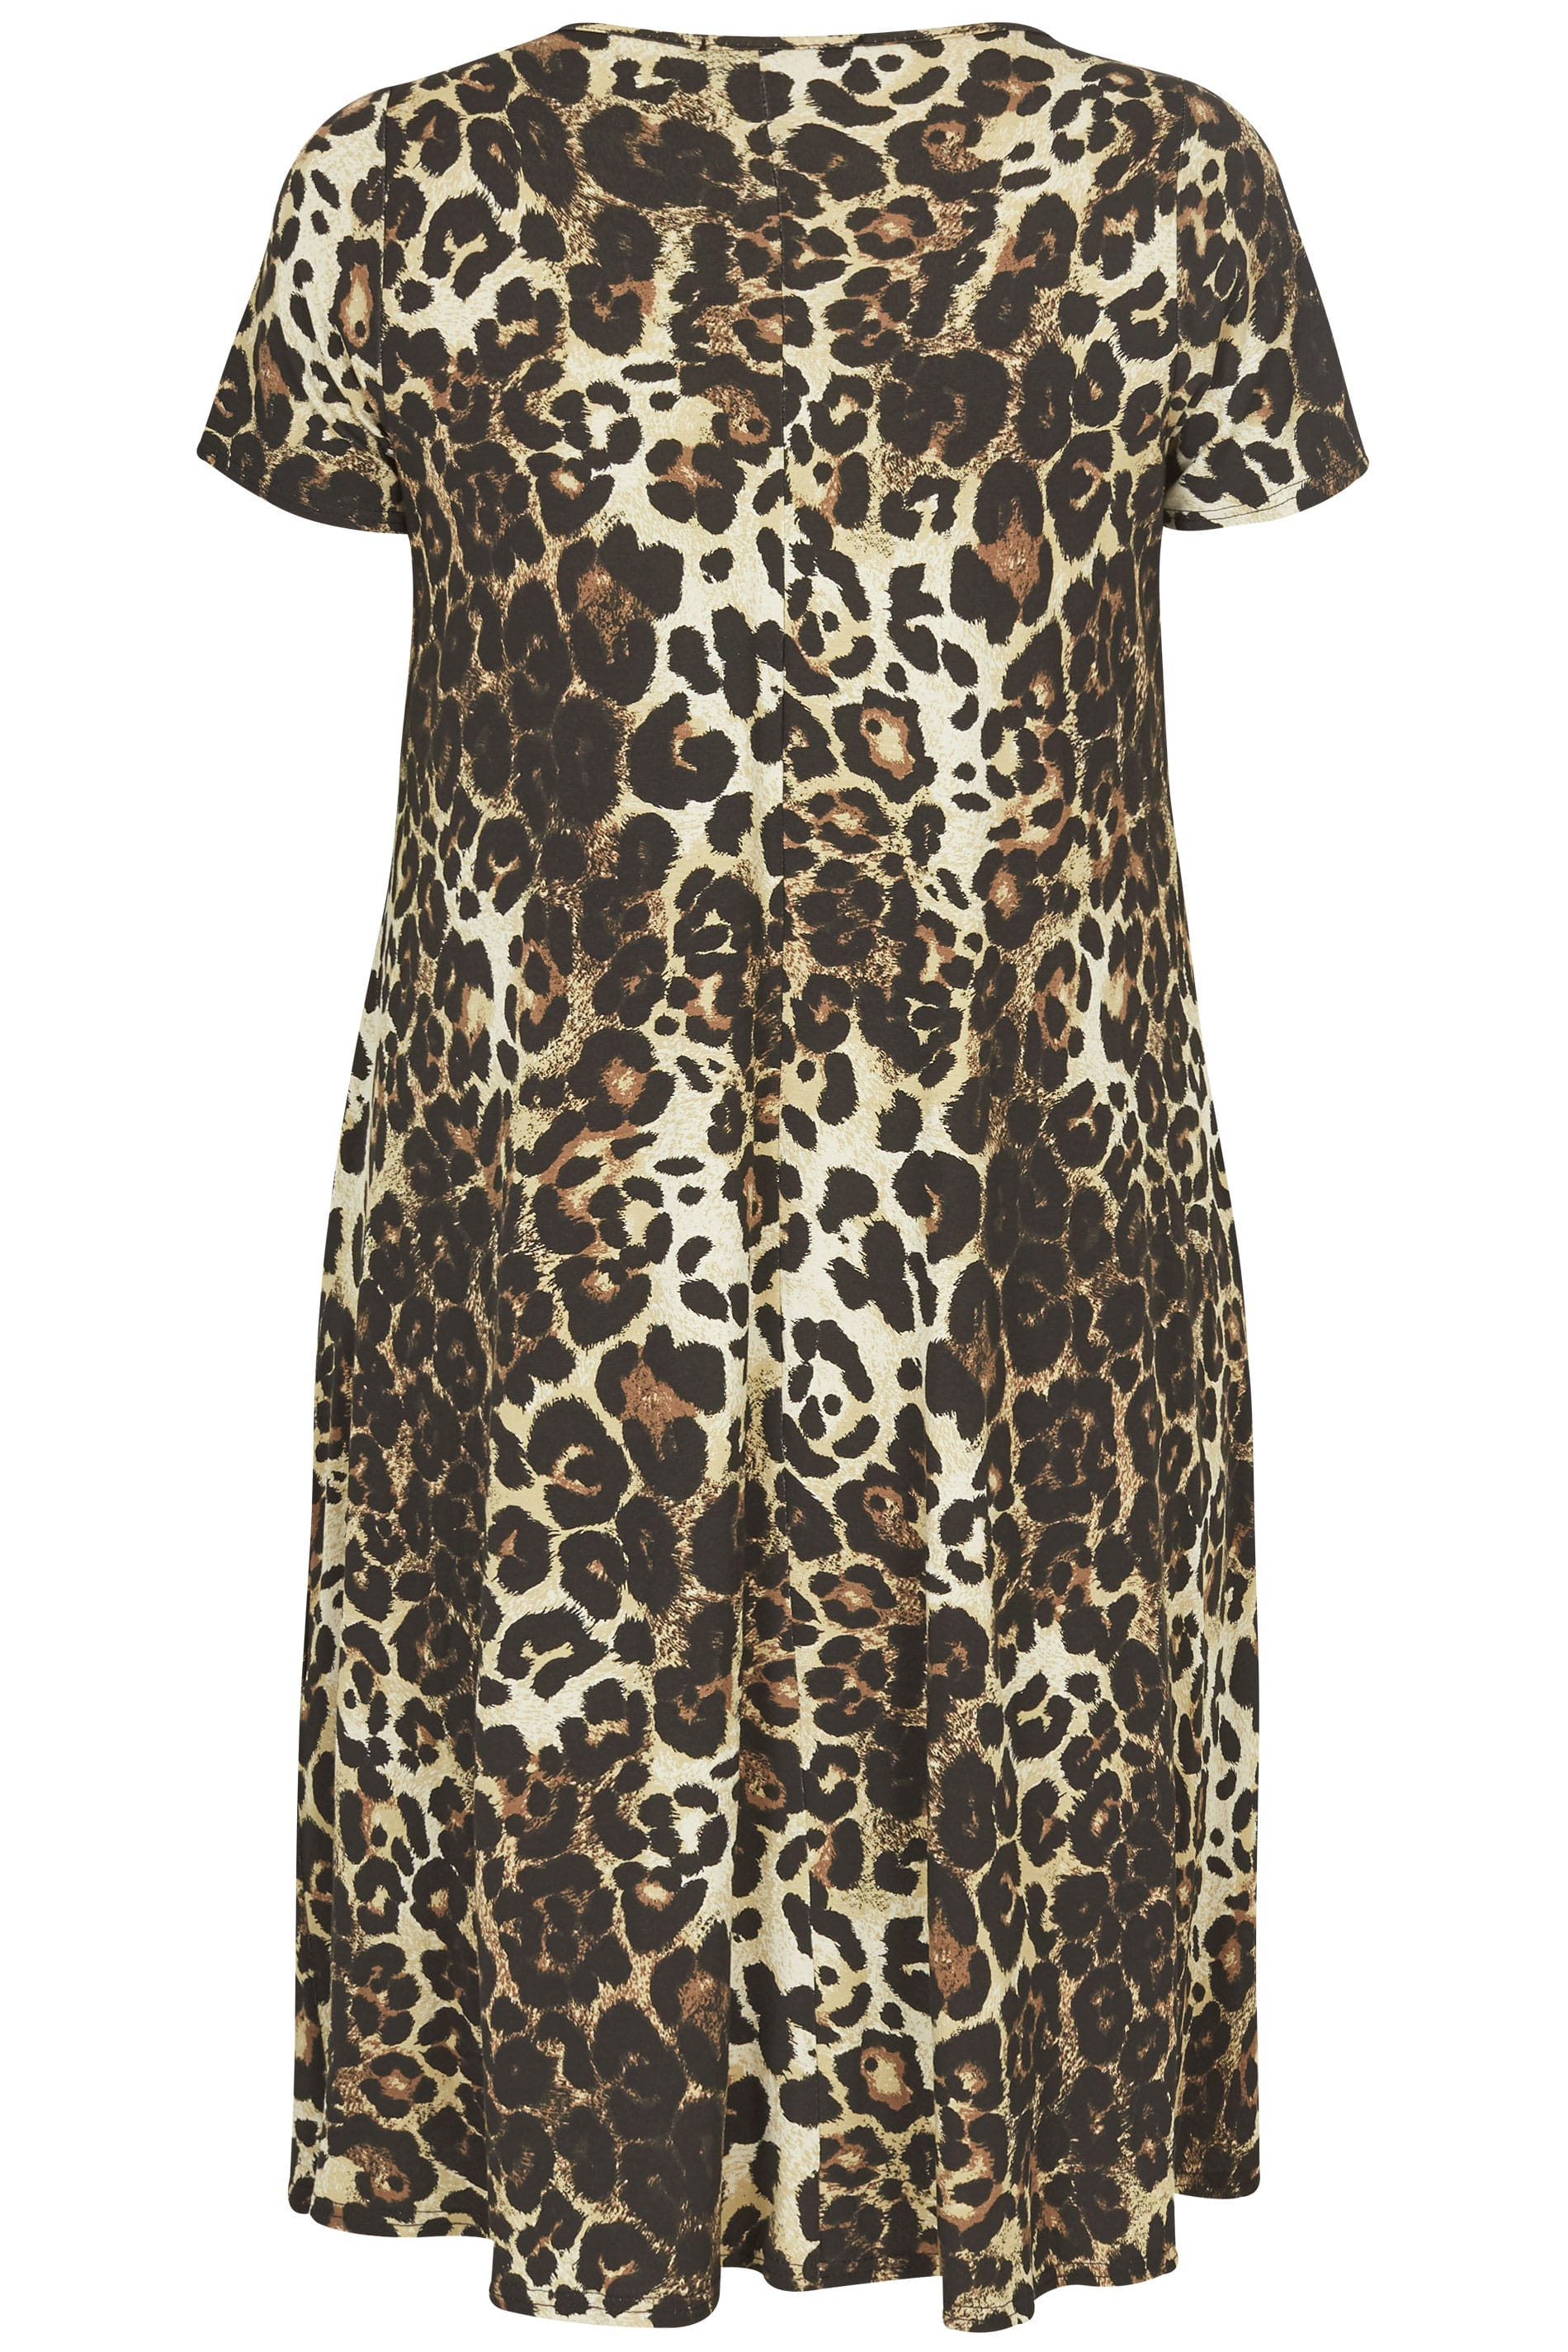 Leopard Print Drape Pocket Dress Plus Size 16 To 36